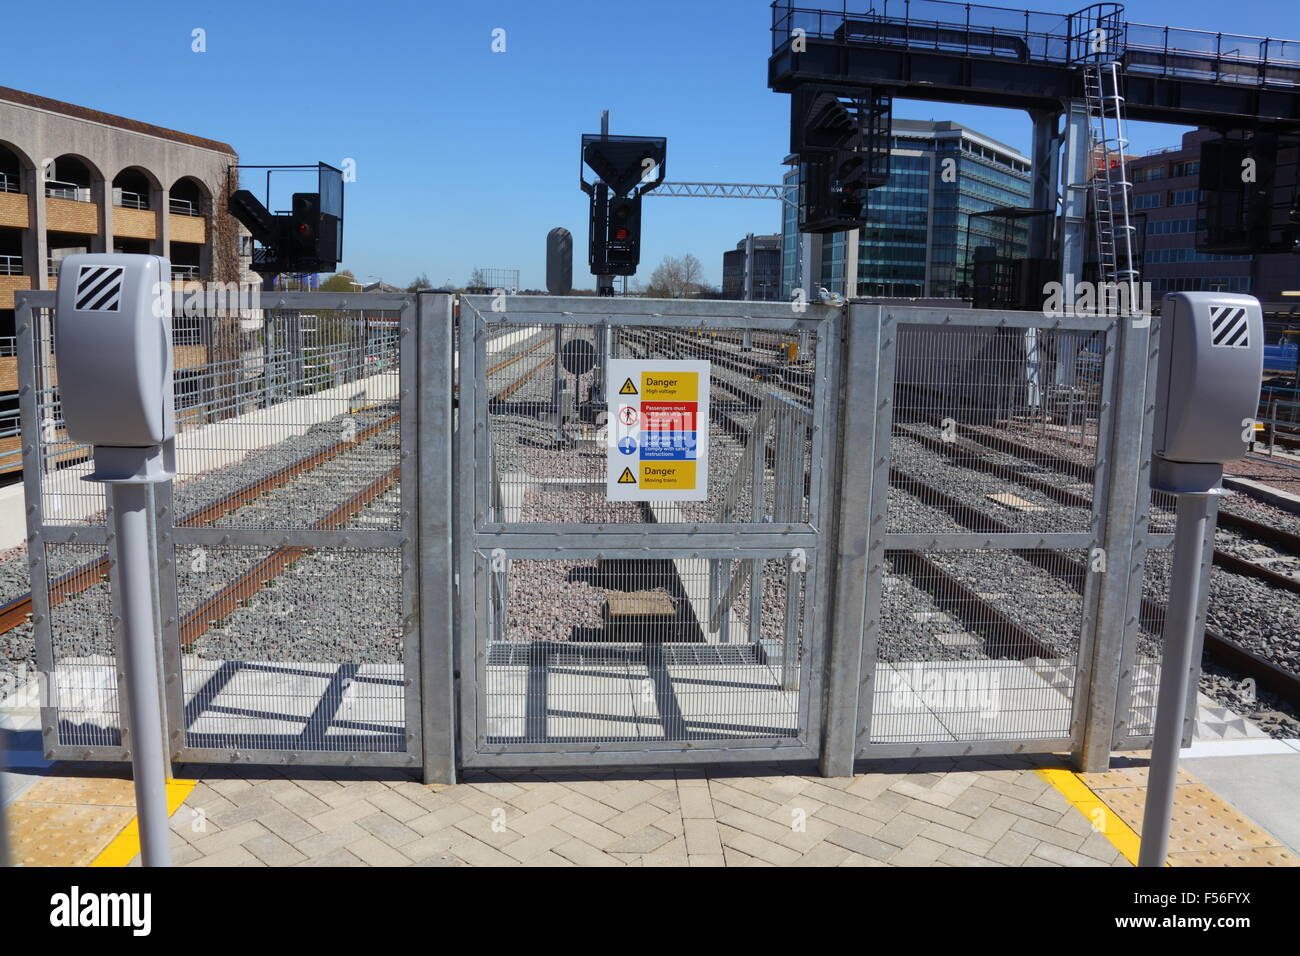 A new security fence on the end of a train station platform with a safety notice attached, also shown are two telephone - Stock Image